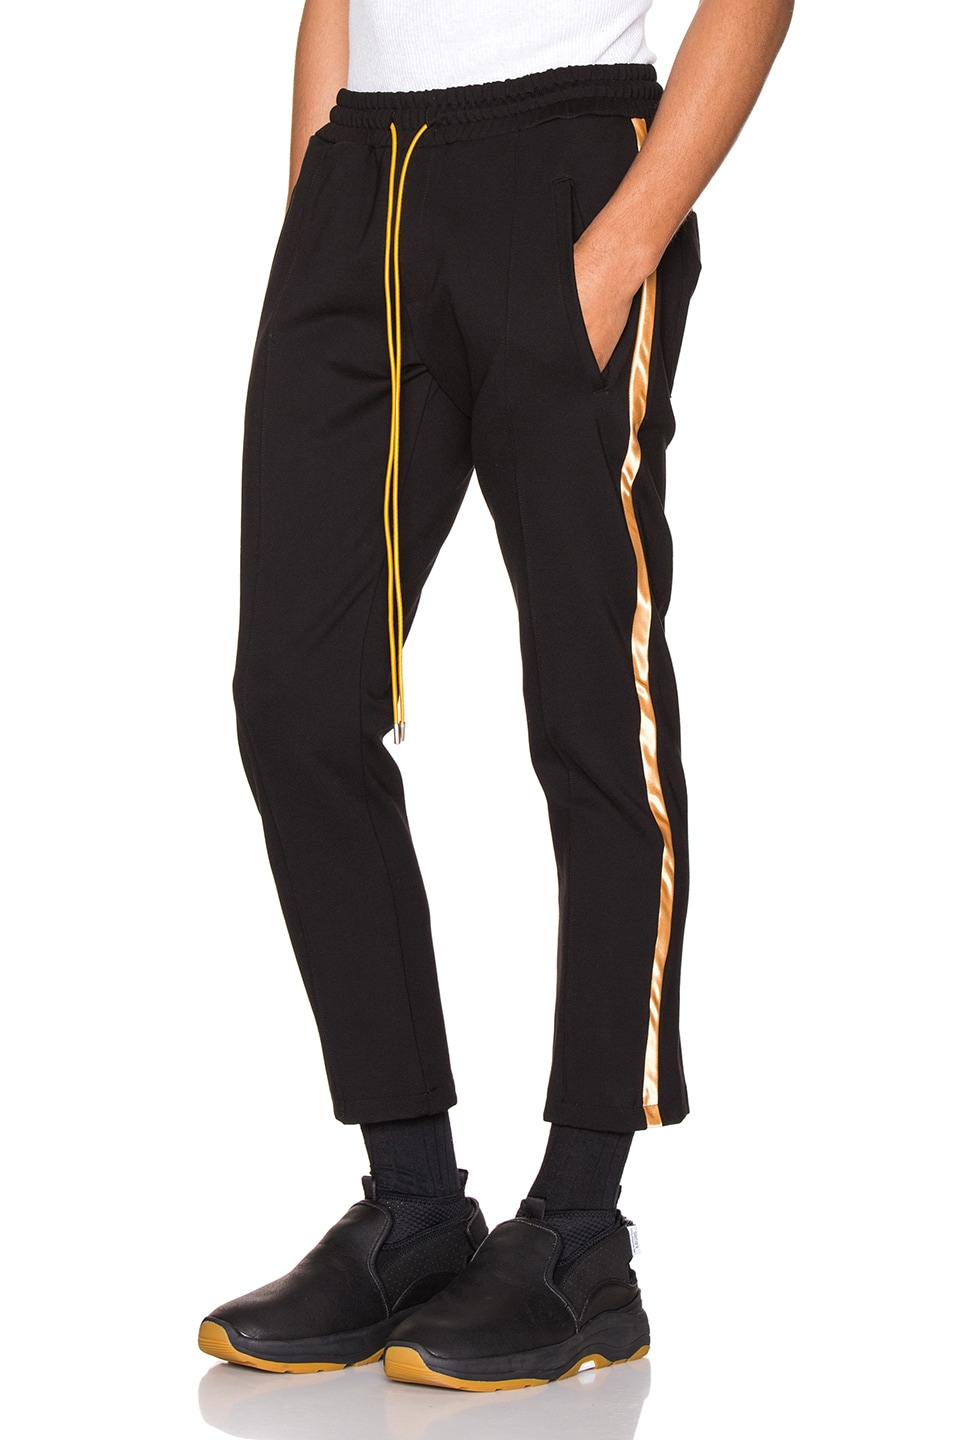 Image 1 of Rhude Traxedo Pant in Black & Gold